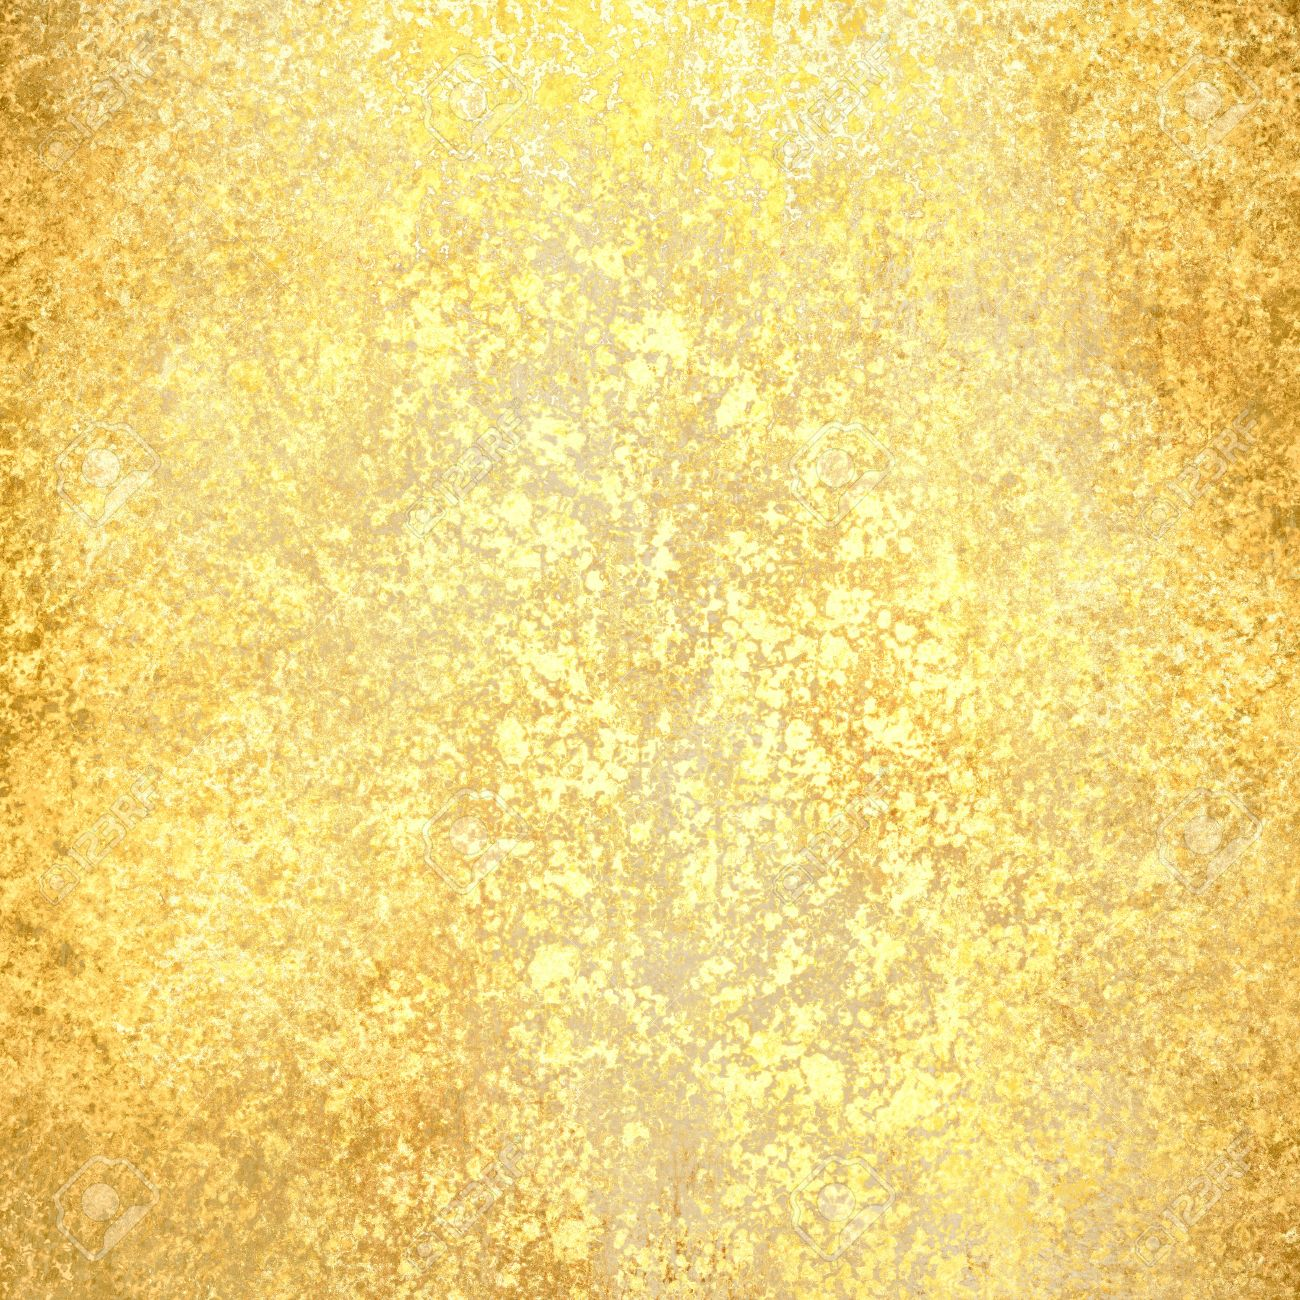 Gold Background Texture Luxury Solid Gold Background Wall With